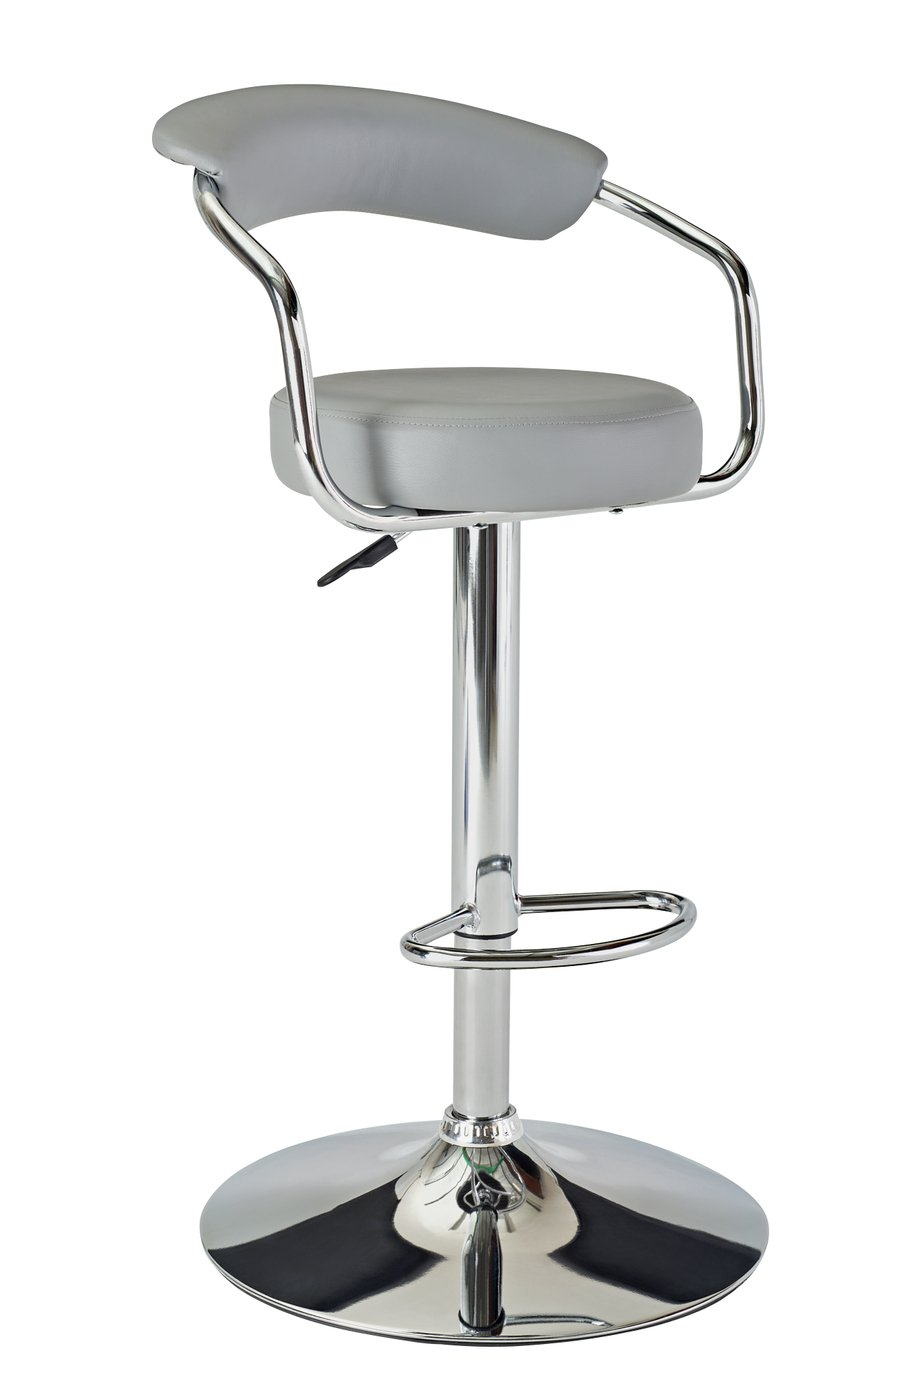 Image of Collection Executive Gas Lift Bar Stool with Back Rest- Grey